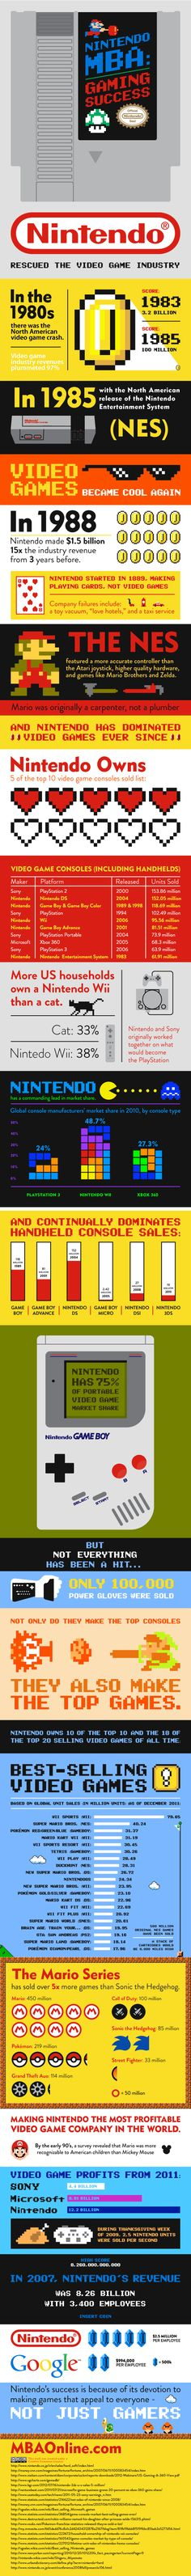 The World of Nintendo | Visit our new infographic gallery at visualoop.com/